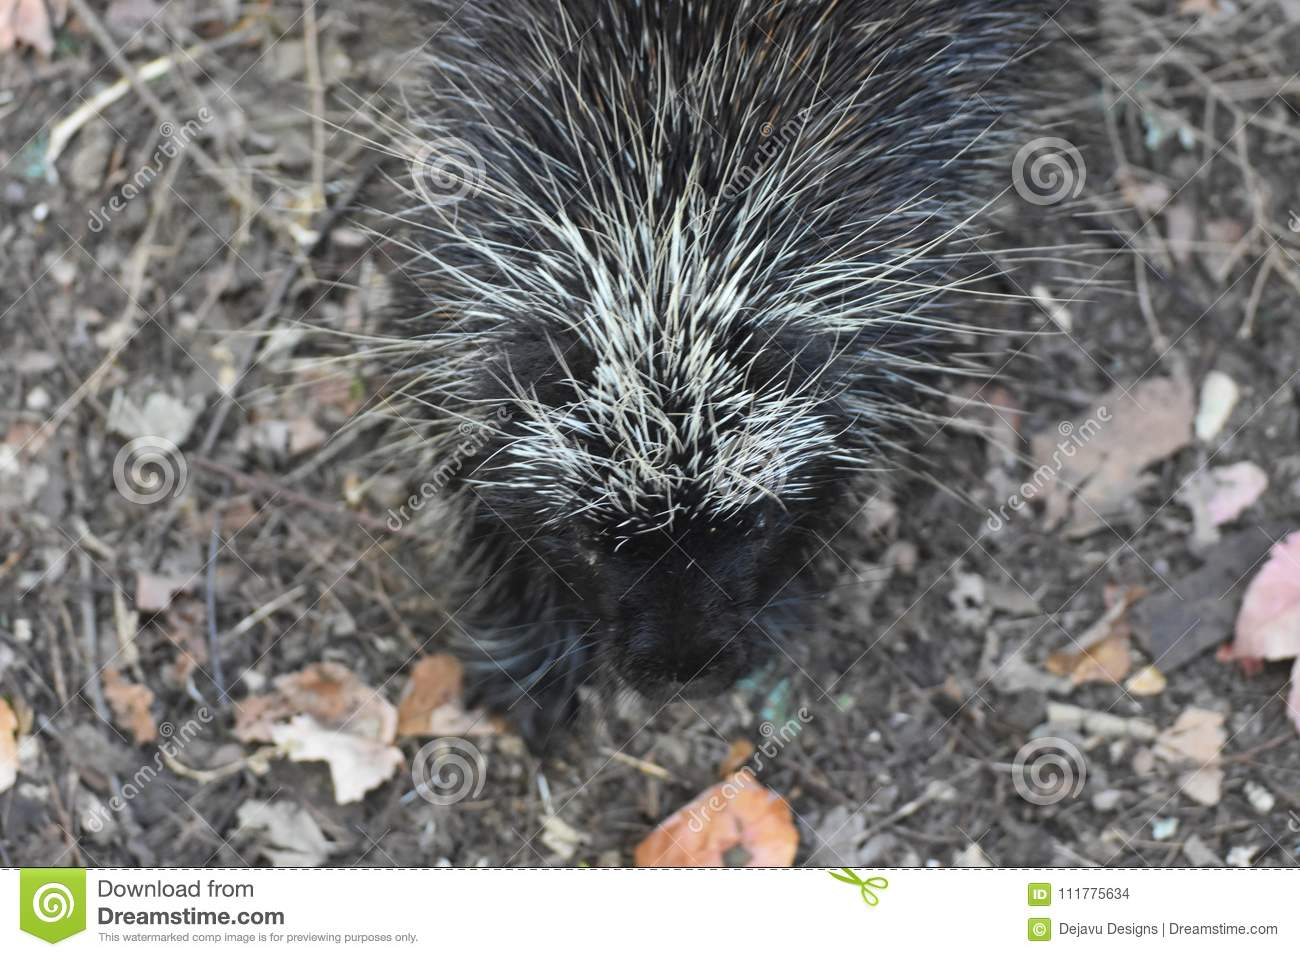 Awesome above shot of a wild porcupine with black and white quills